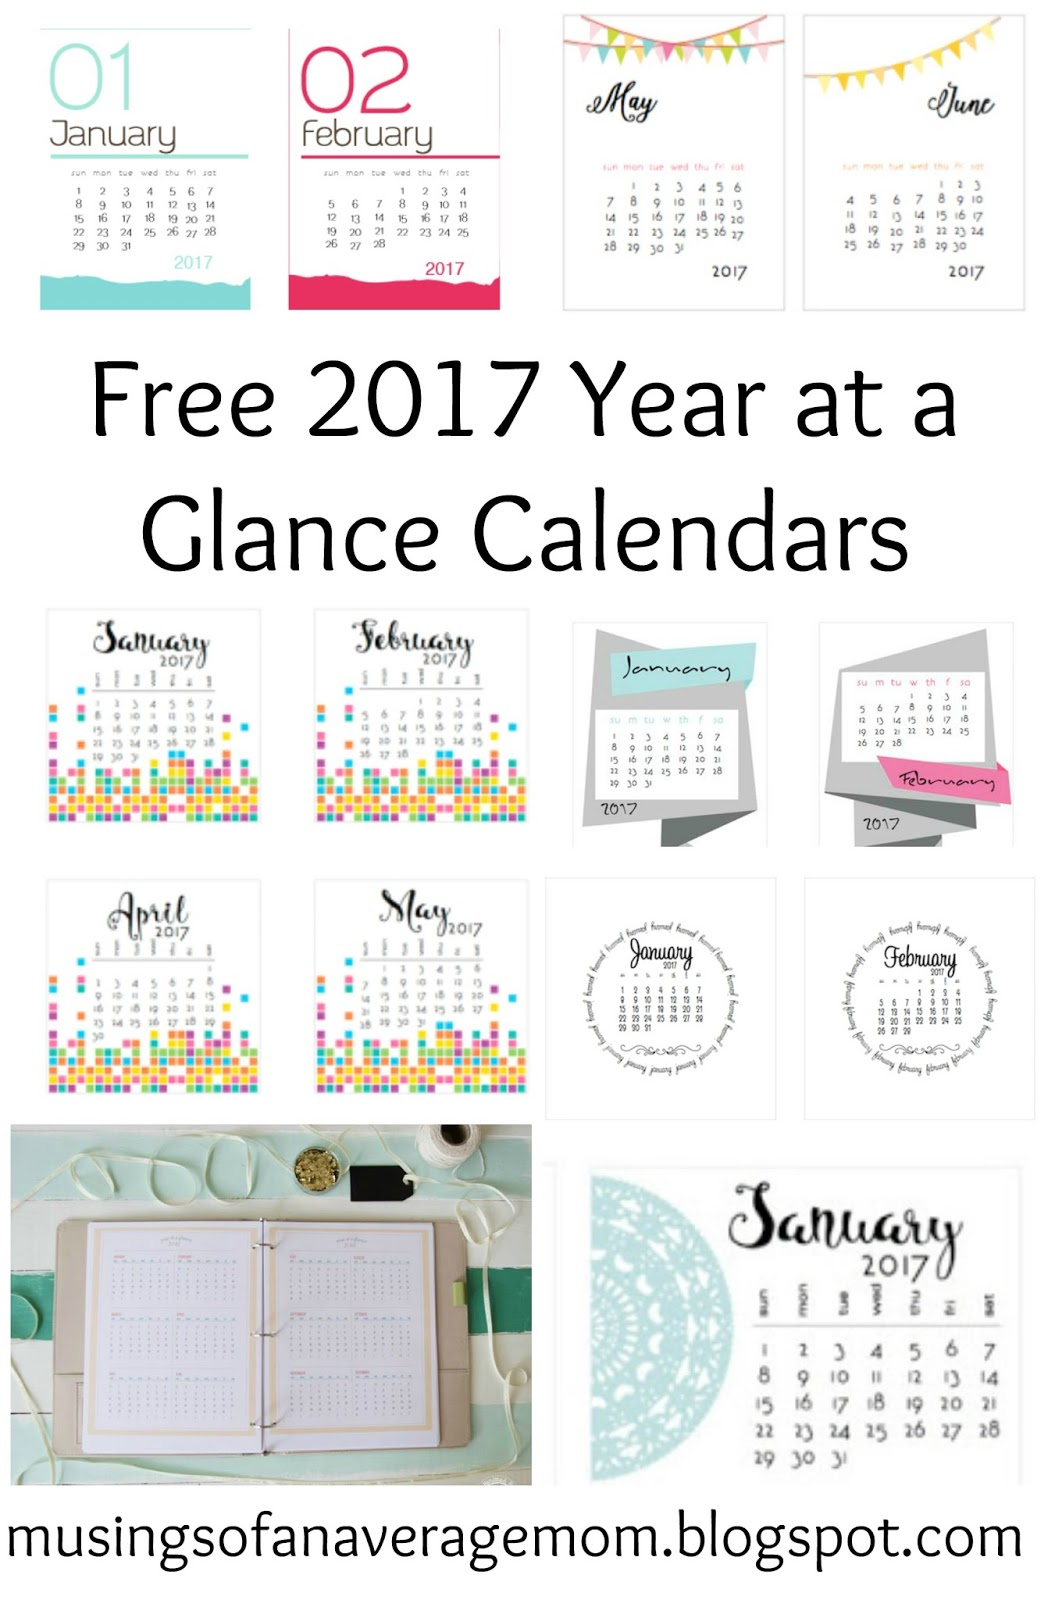 Year Calendar At A Glance : Musings of an average mom year at a glance calendars